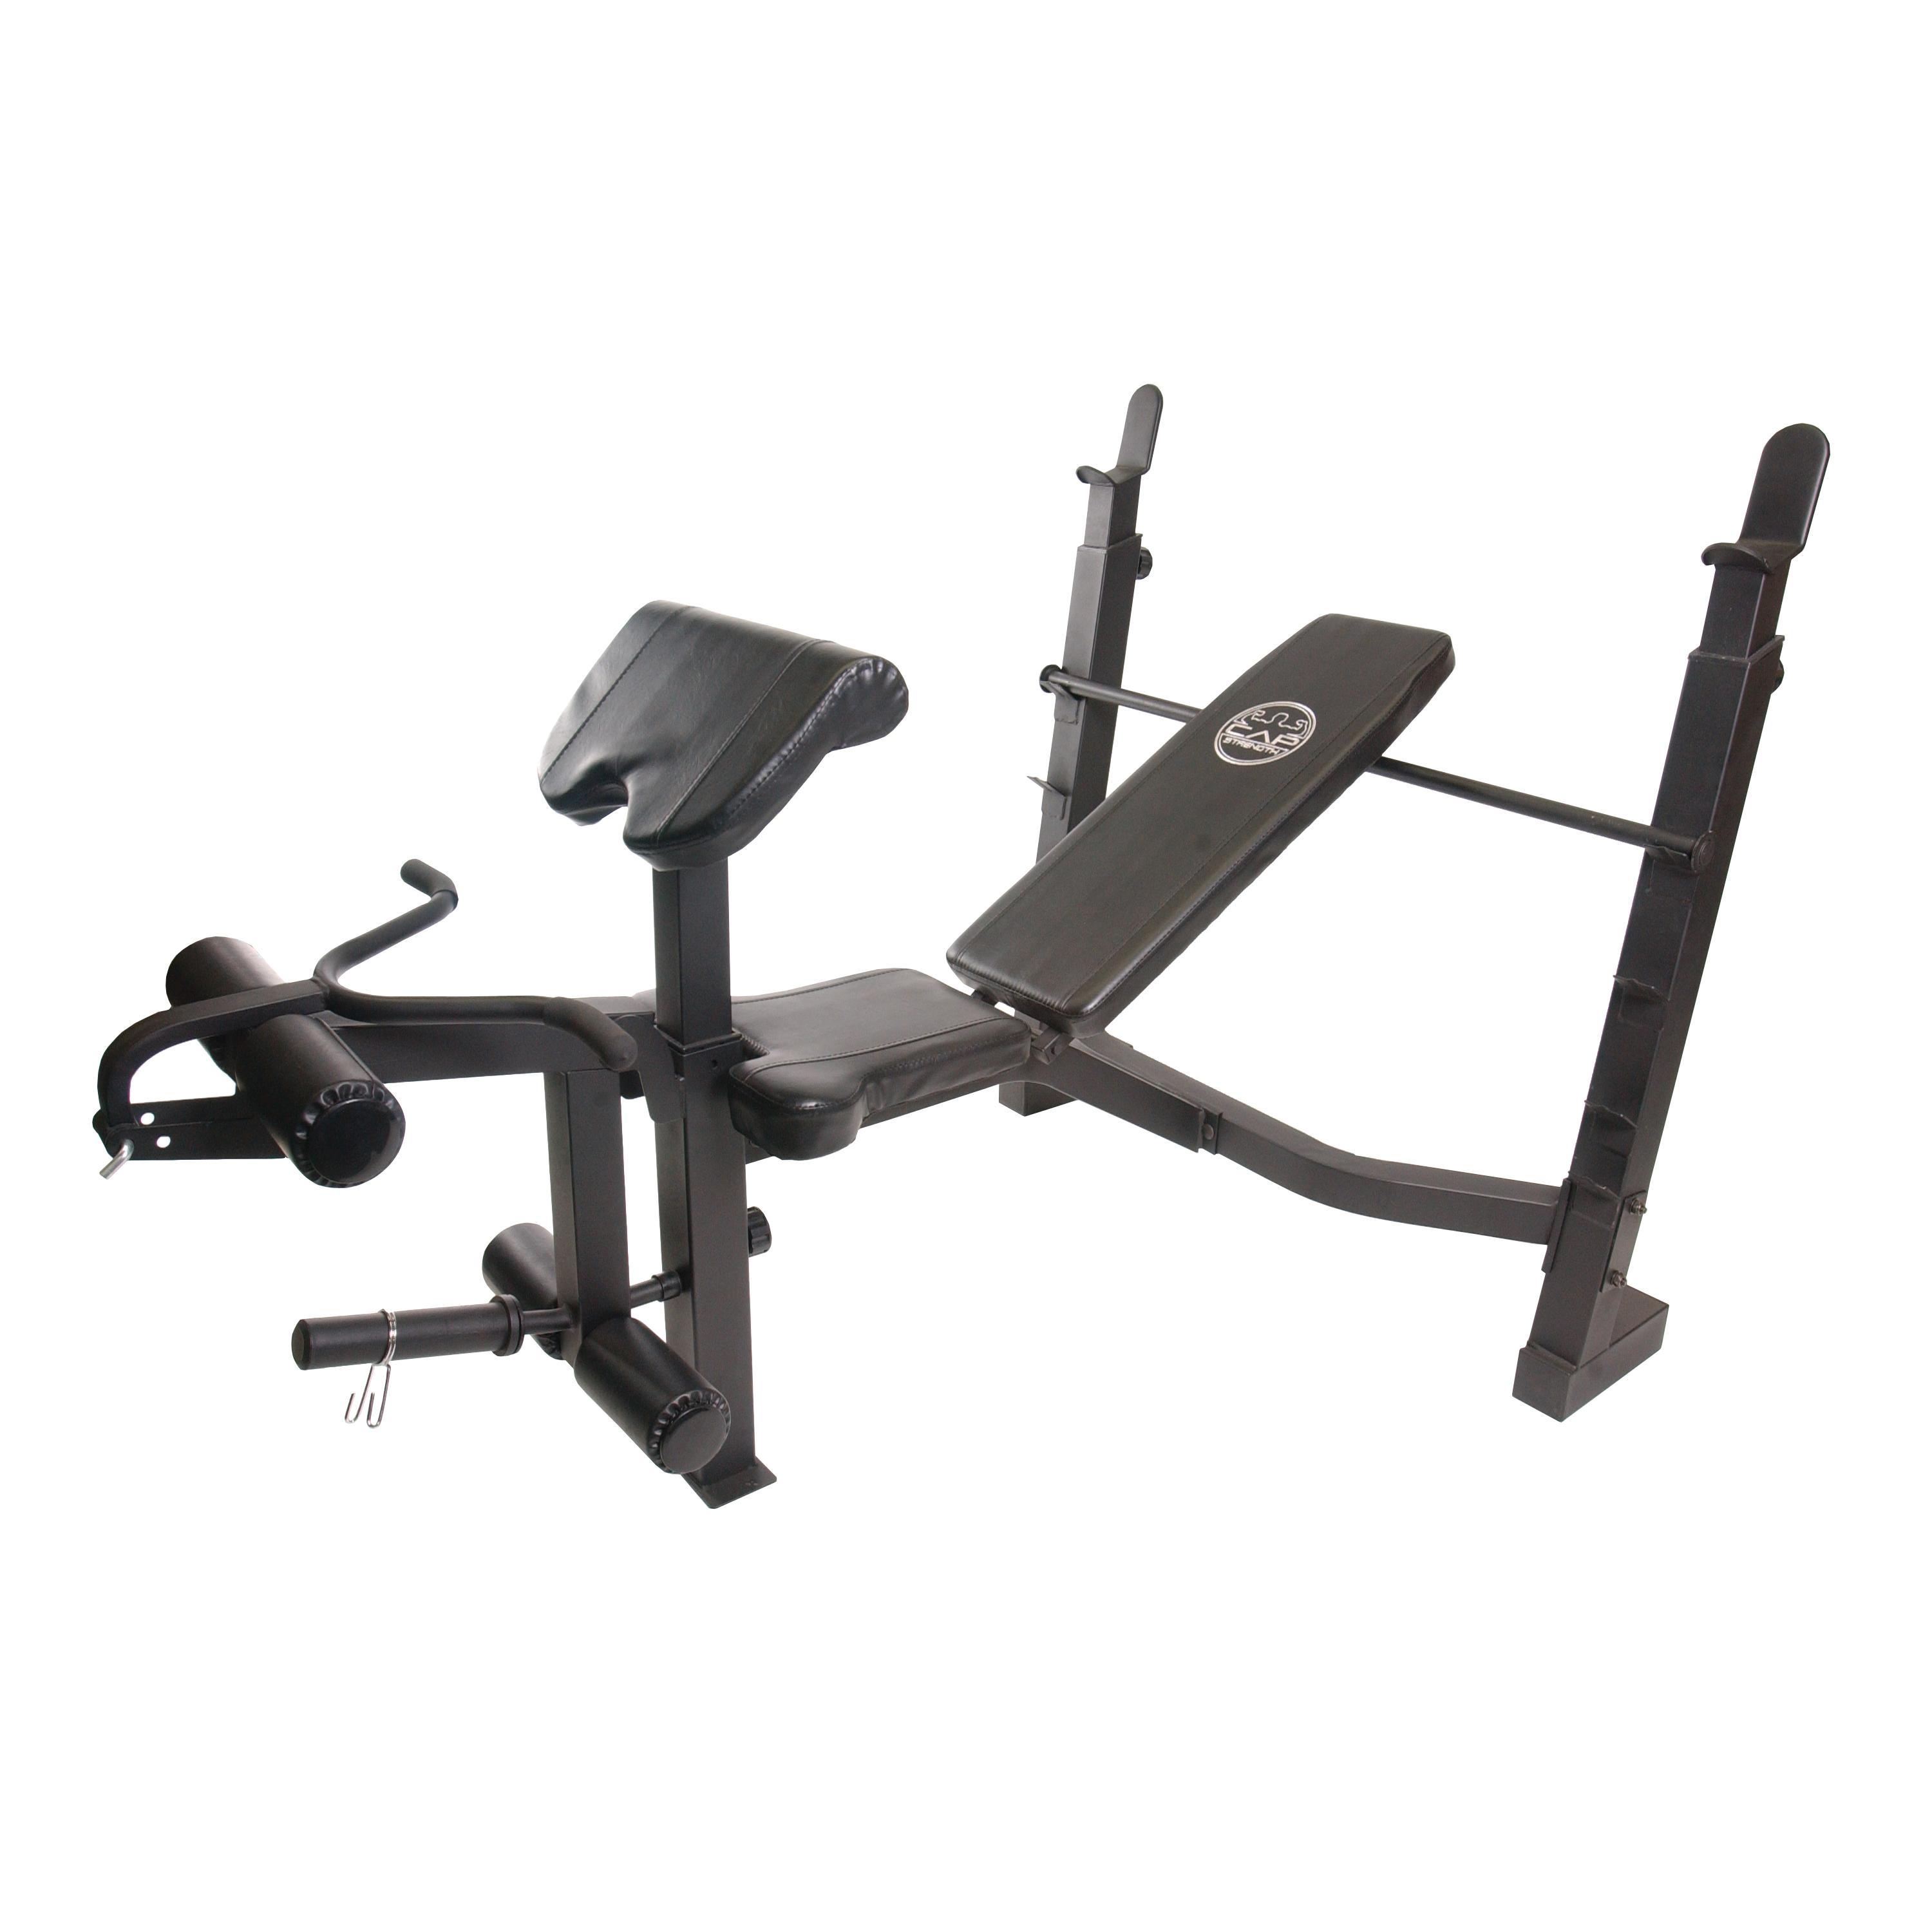 CAP Barbell Olympic-size Advanced Weight Bench